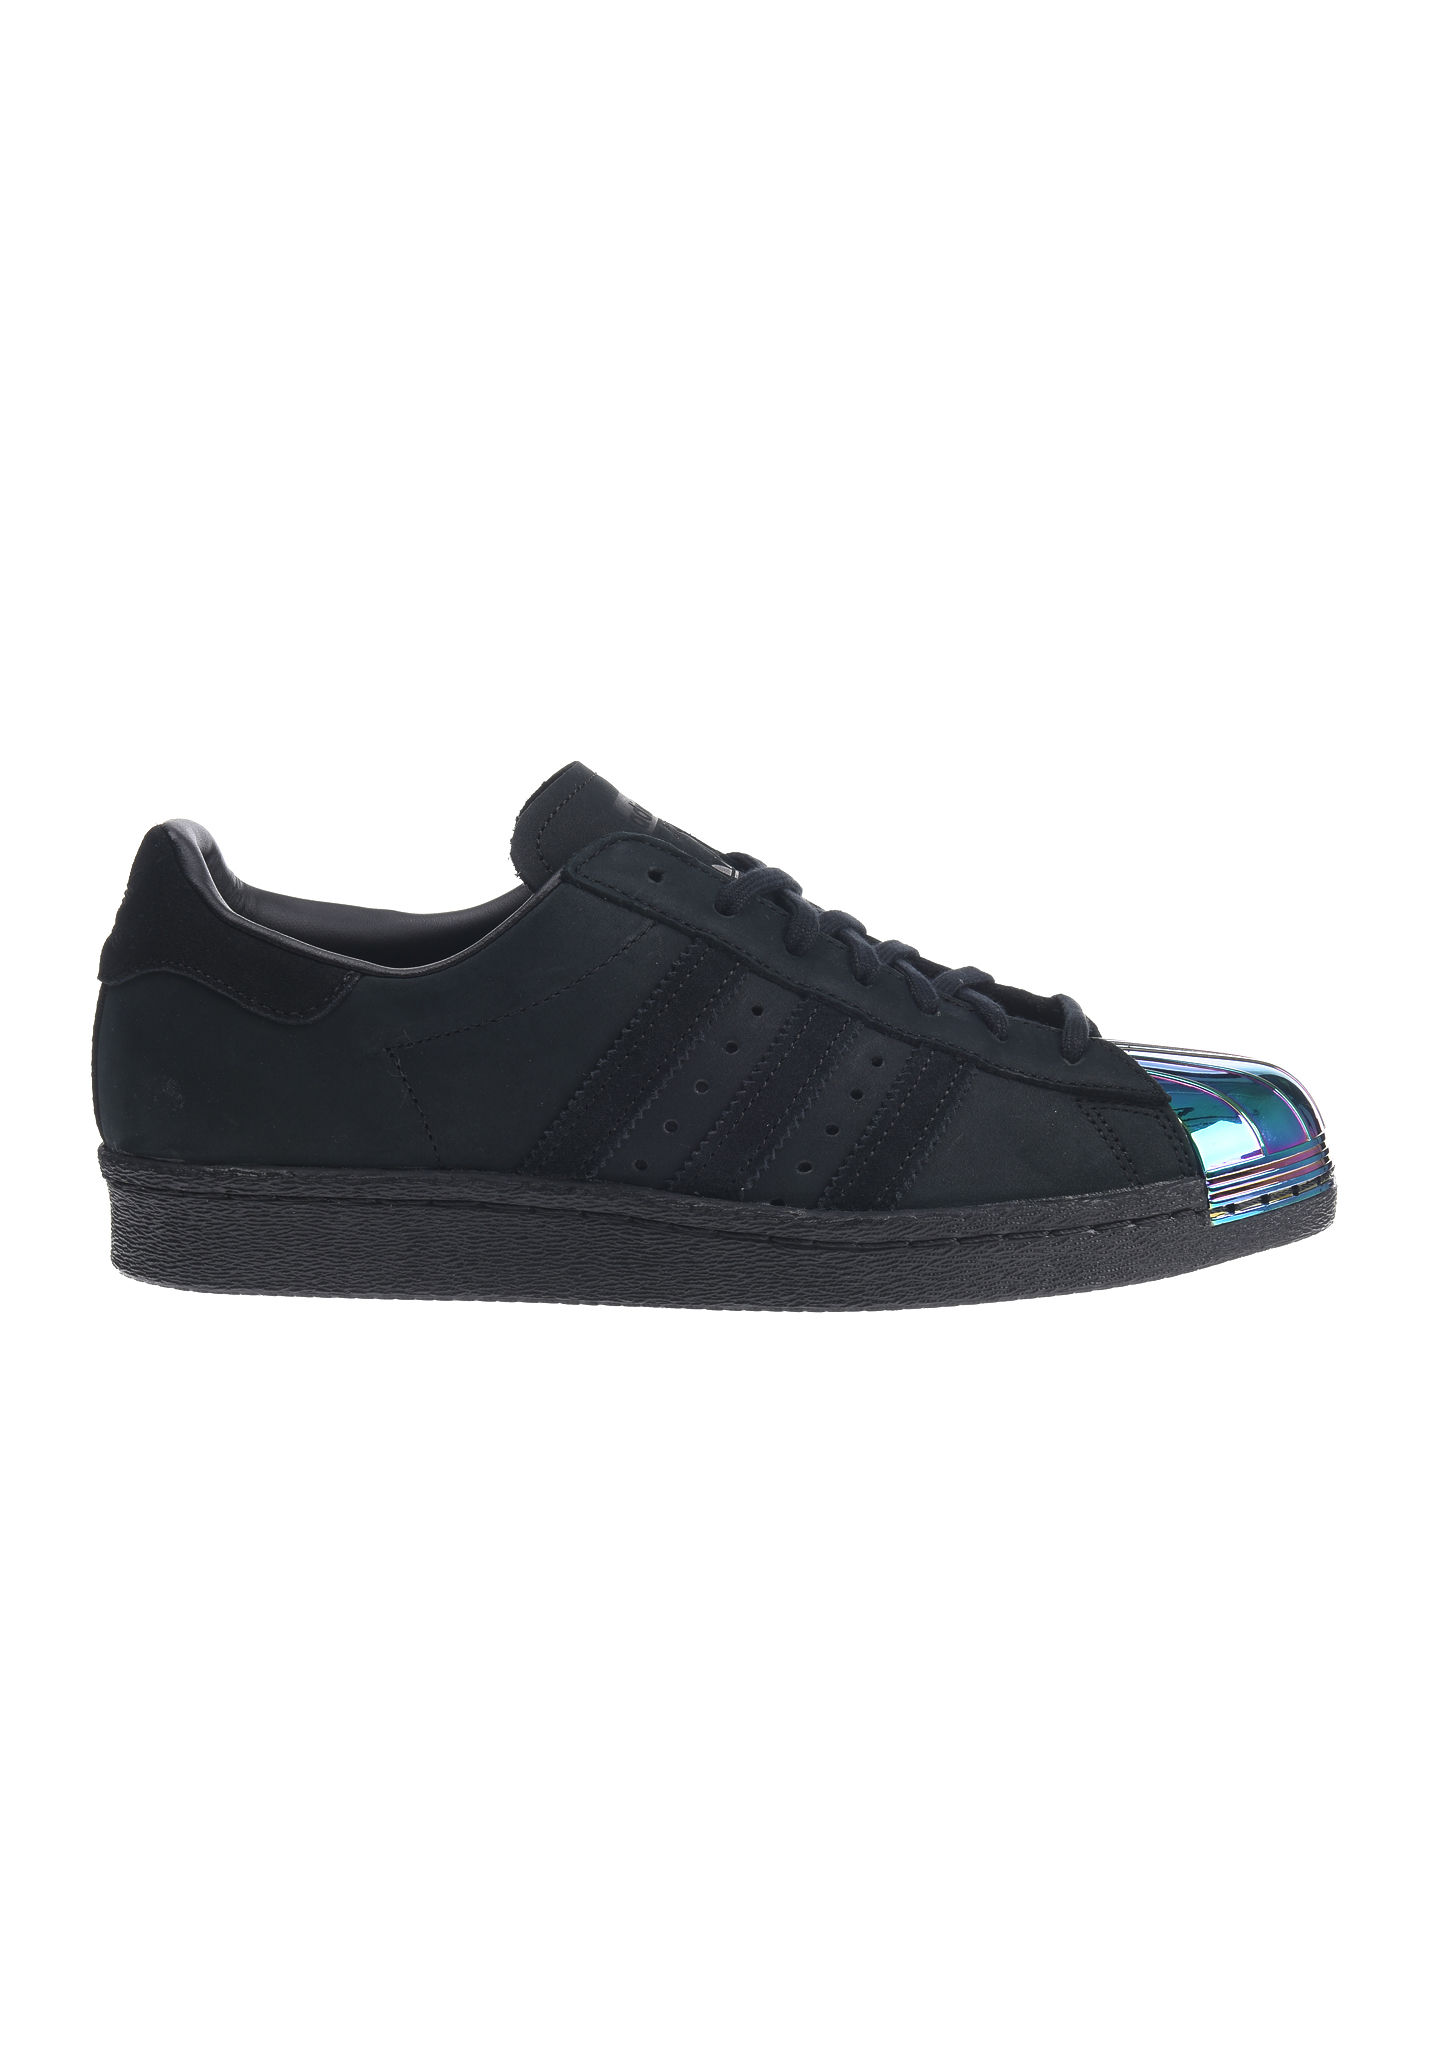 official photos 239e9 81a66 ADIDAS Superstar 80S Metal Toe - Sneakers for Women - Black - Planet Sports